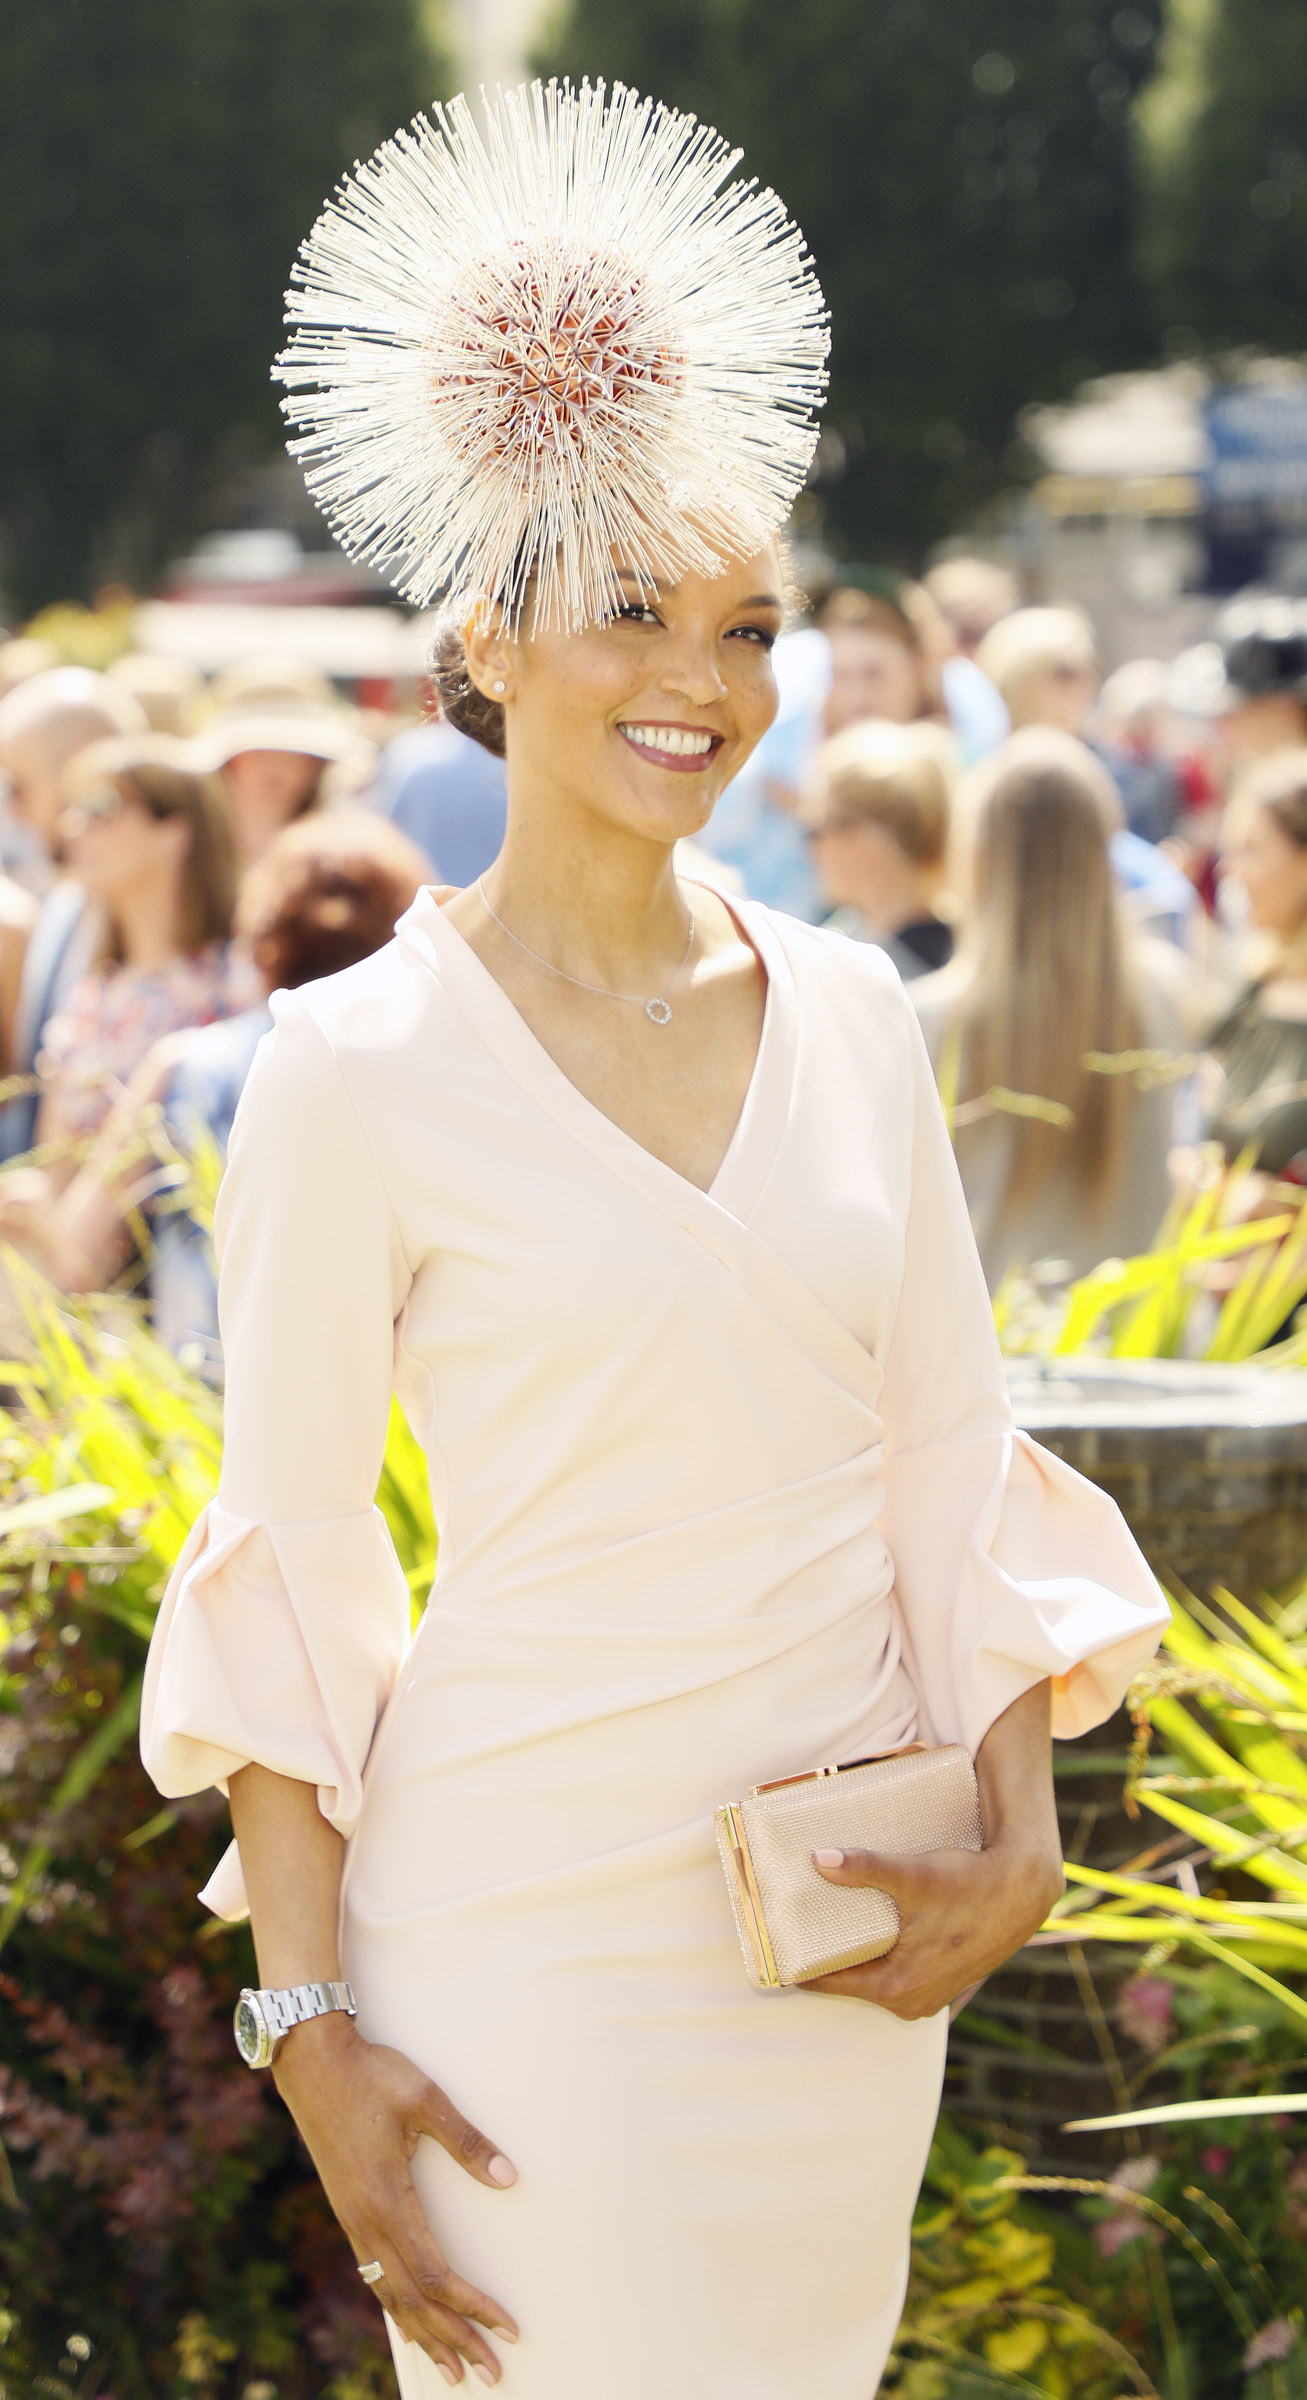 Linda Malone at the Dundrum Town Centre Ladies' Day at the Dublin Horse Show in the RDS. Photo: Kieran Harnett